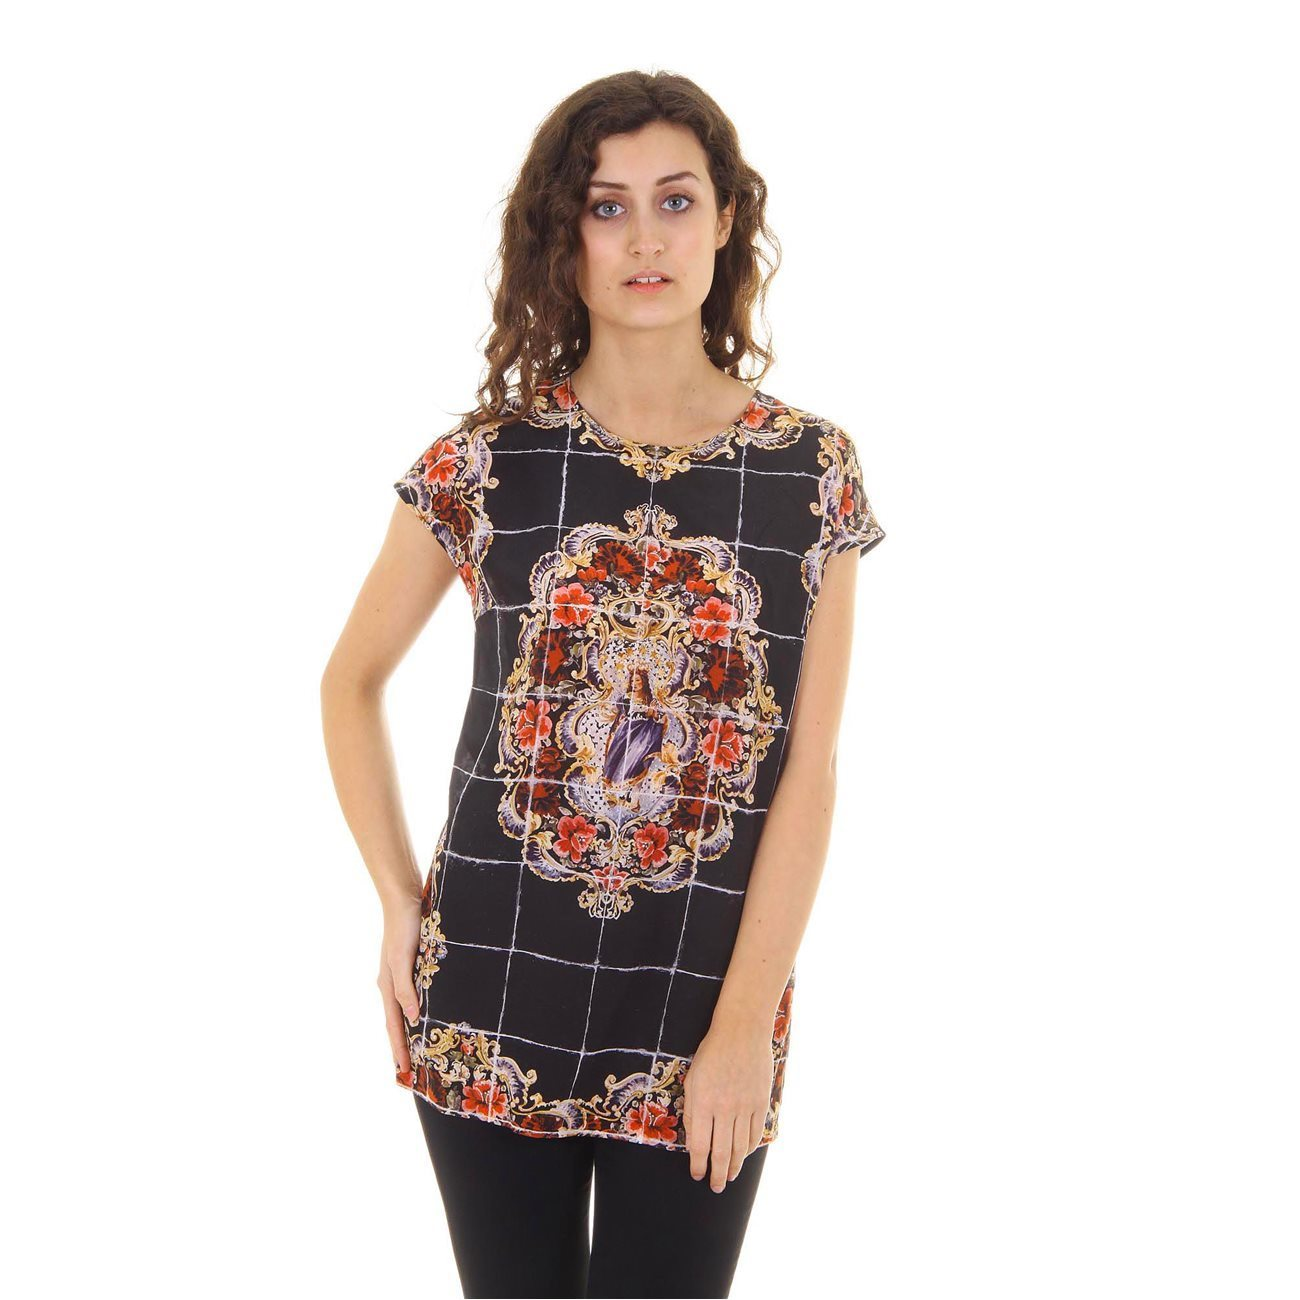 Primary image for Dolce & Gabbana ladies top short sleeve F7Q08T FP15Y X0800